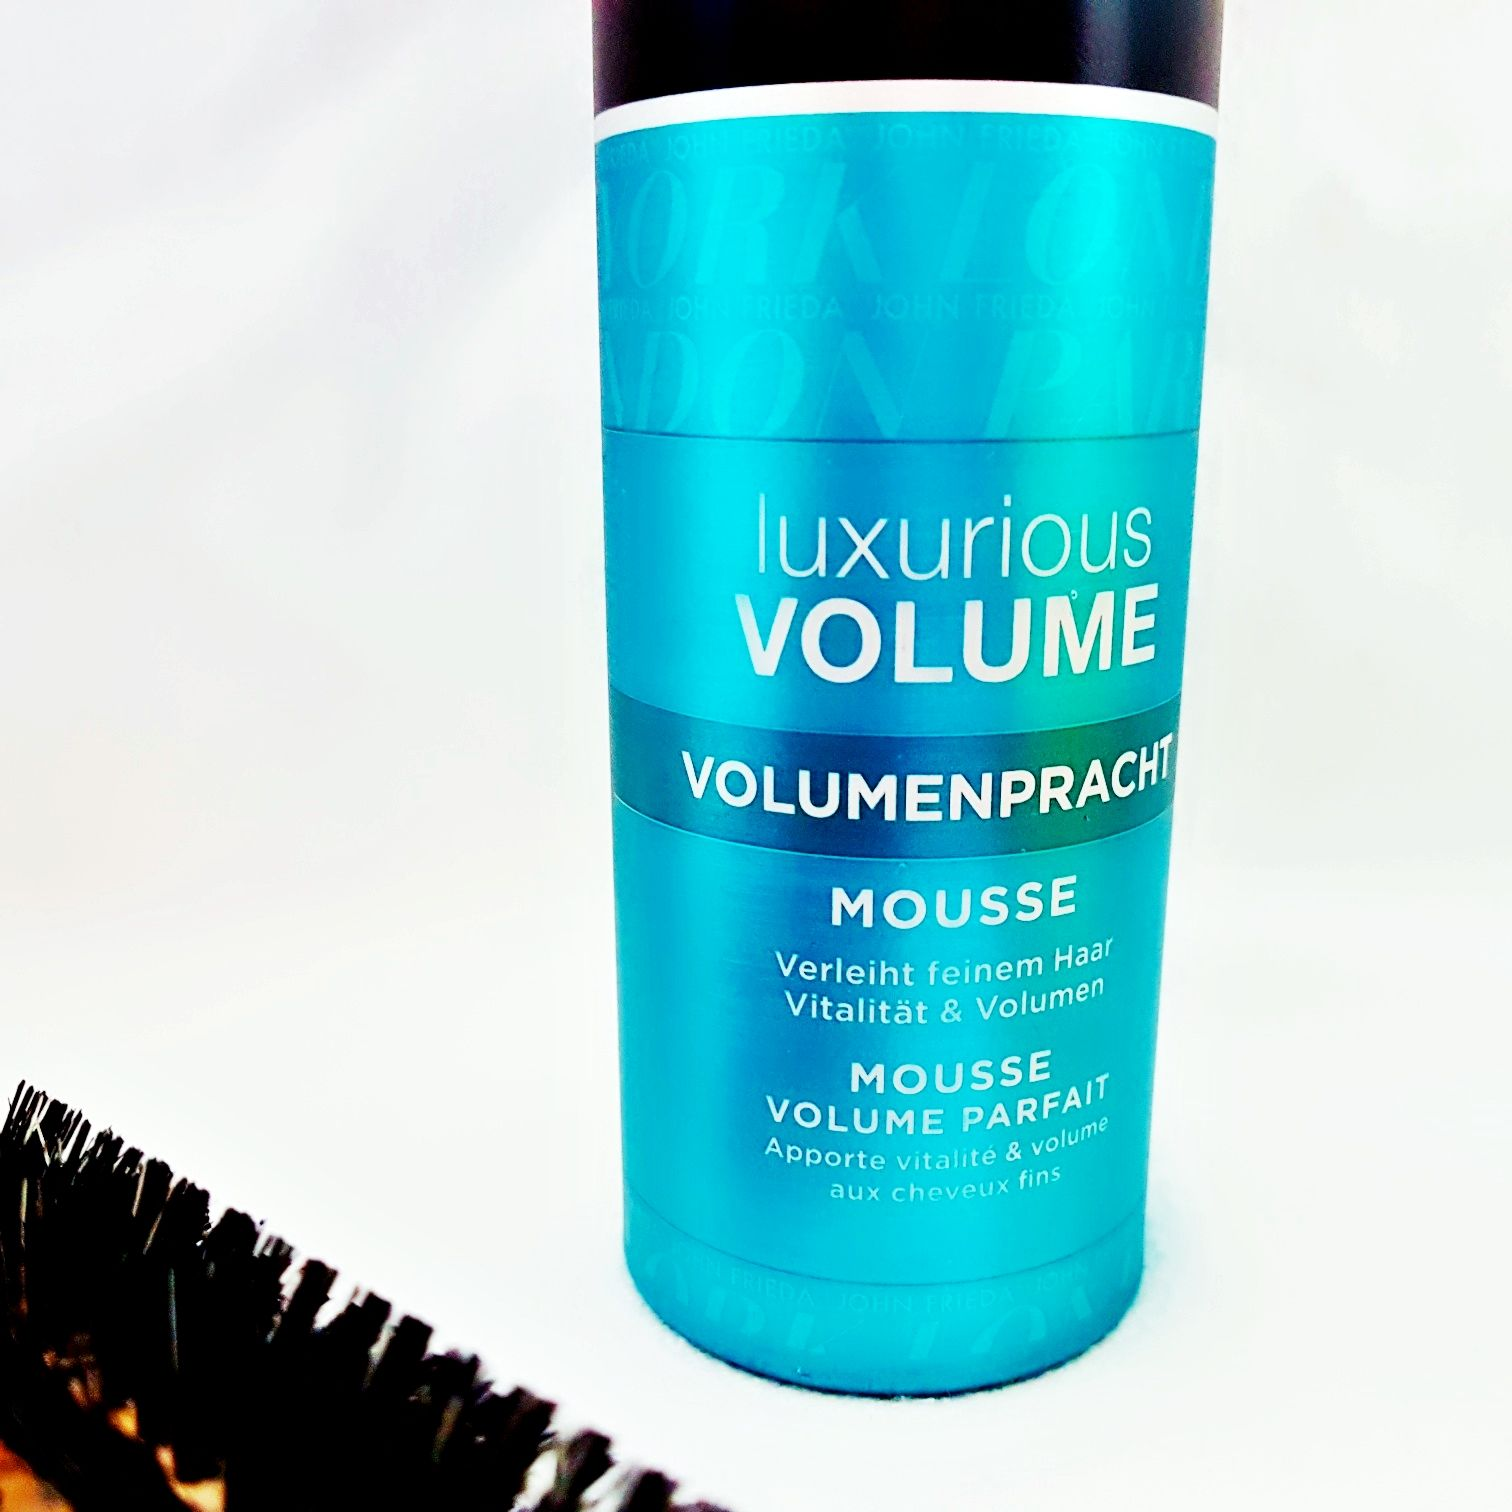 John Frieda luxurious Volume Volumenpacht Mousse